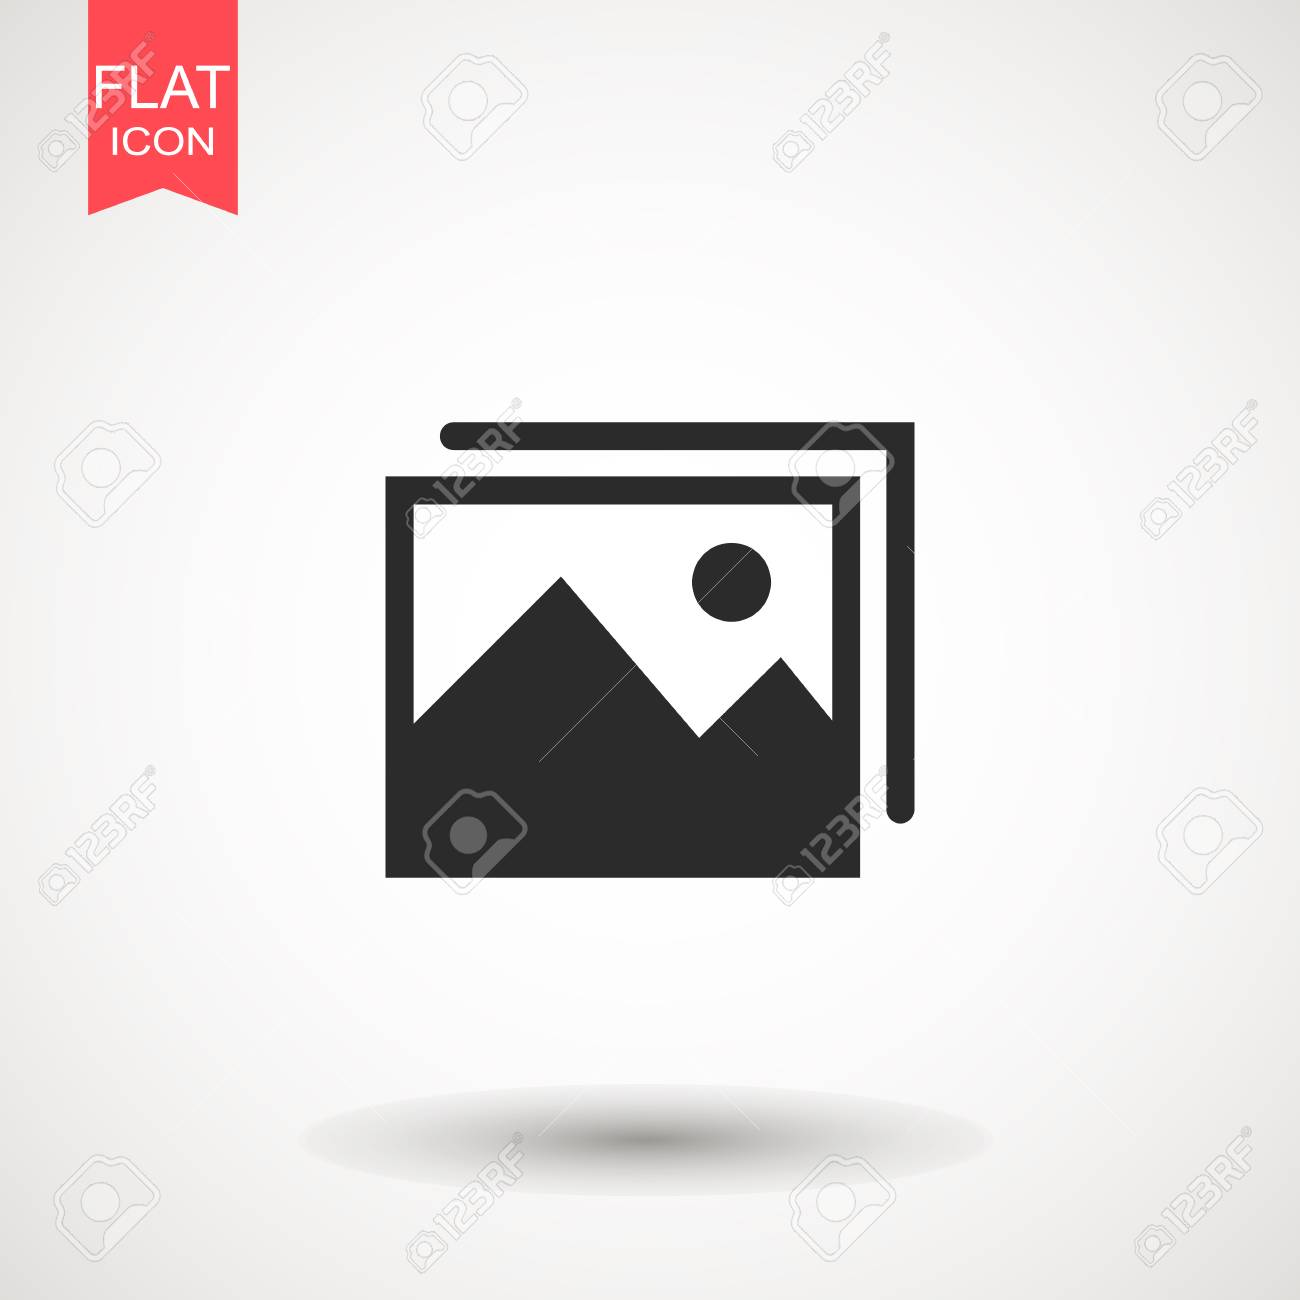 Picture Vector Icon Image Symbol Picture Coming Soon Means Royalty Free Cliparts Vectors And Stock Illustration Image 97840693